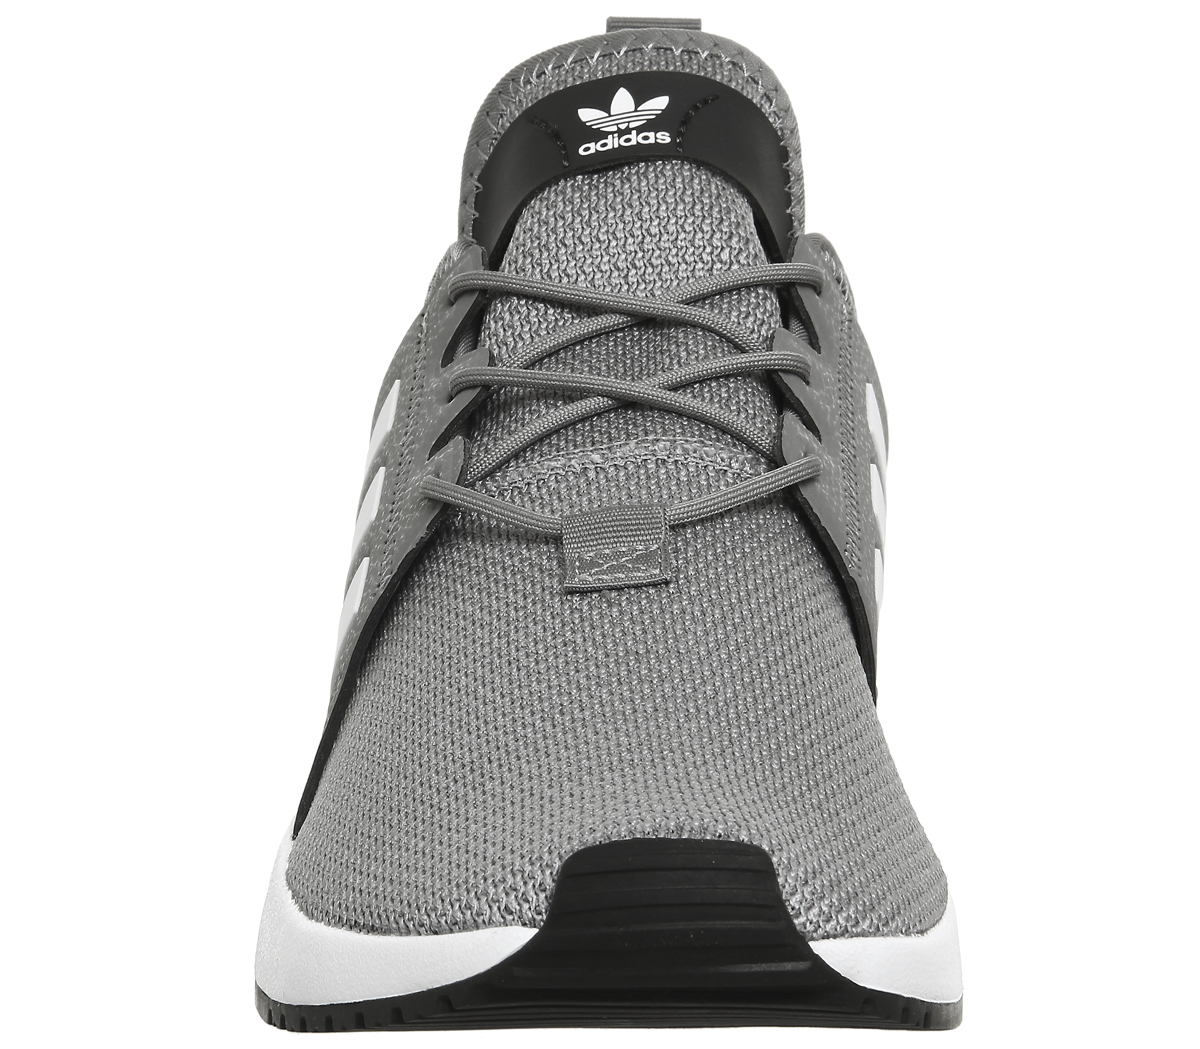 6f6d2f773b8a Adidas X PLR Trainers GREY WHITE CARBON Trainers Shoes